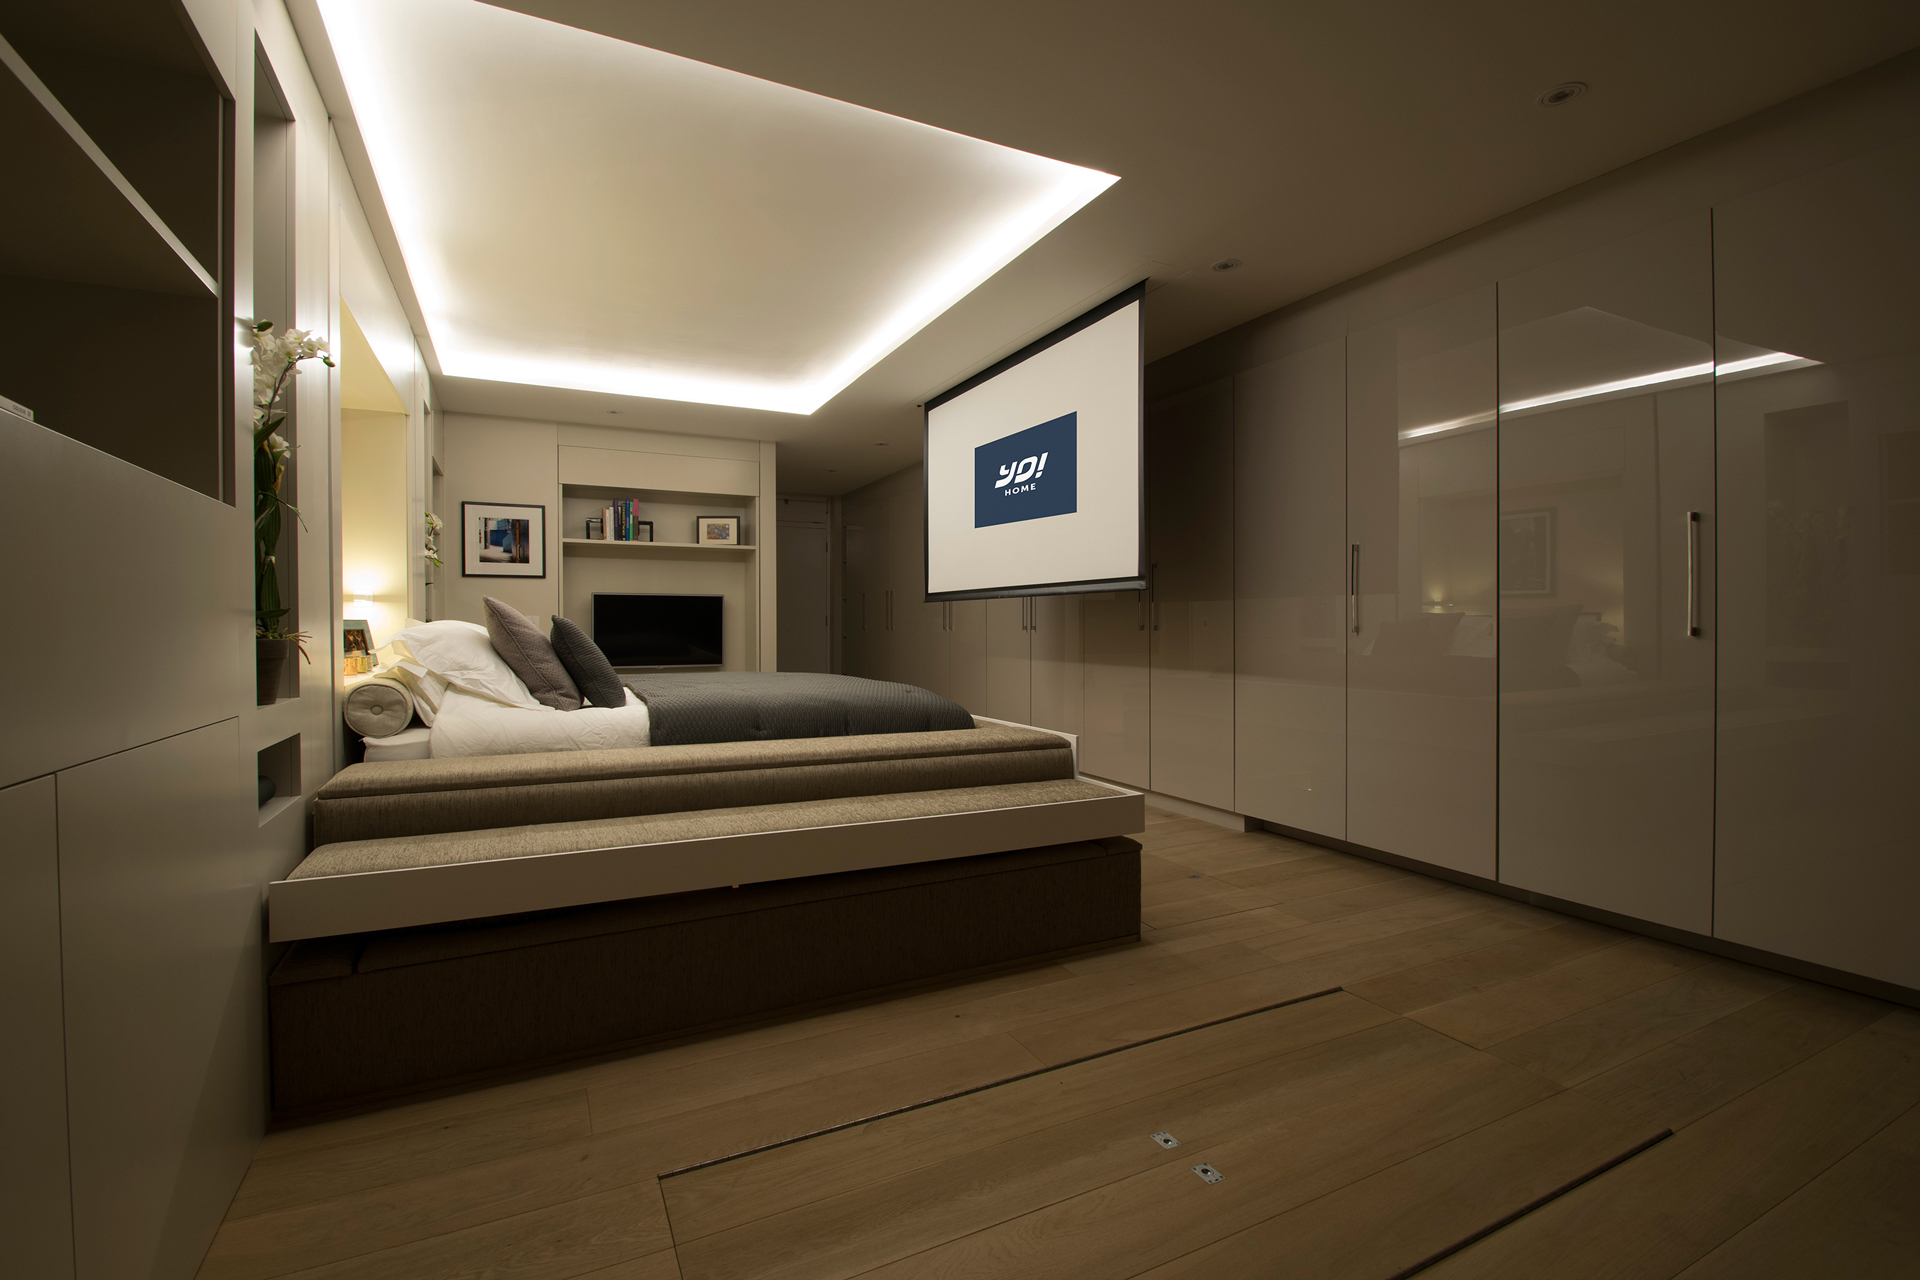 YO! Home's projector screen is hanging from the ceiling and it's motorized bed rests on a sunken U-shaped sofa.